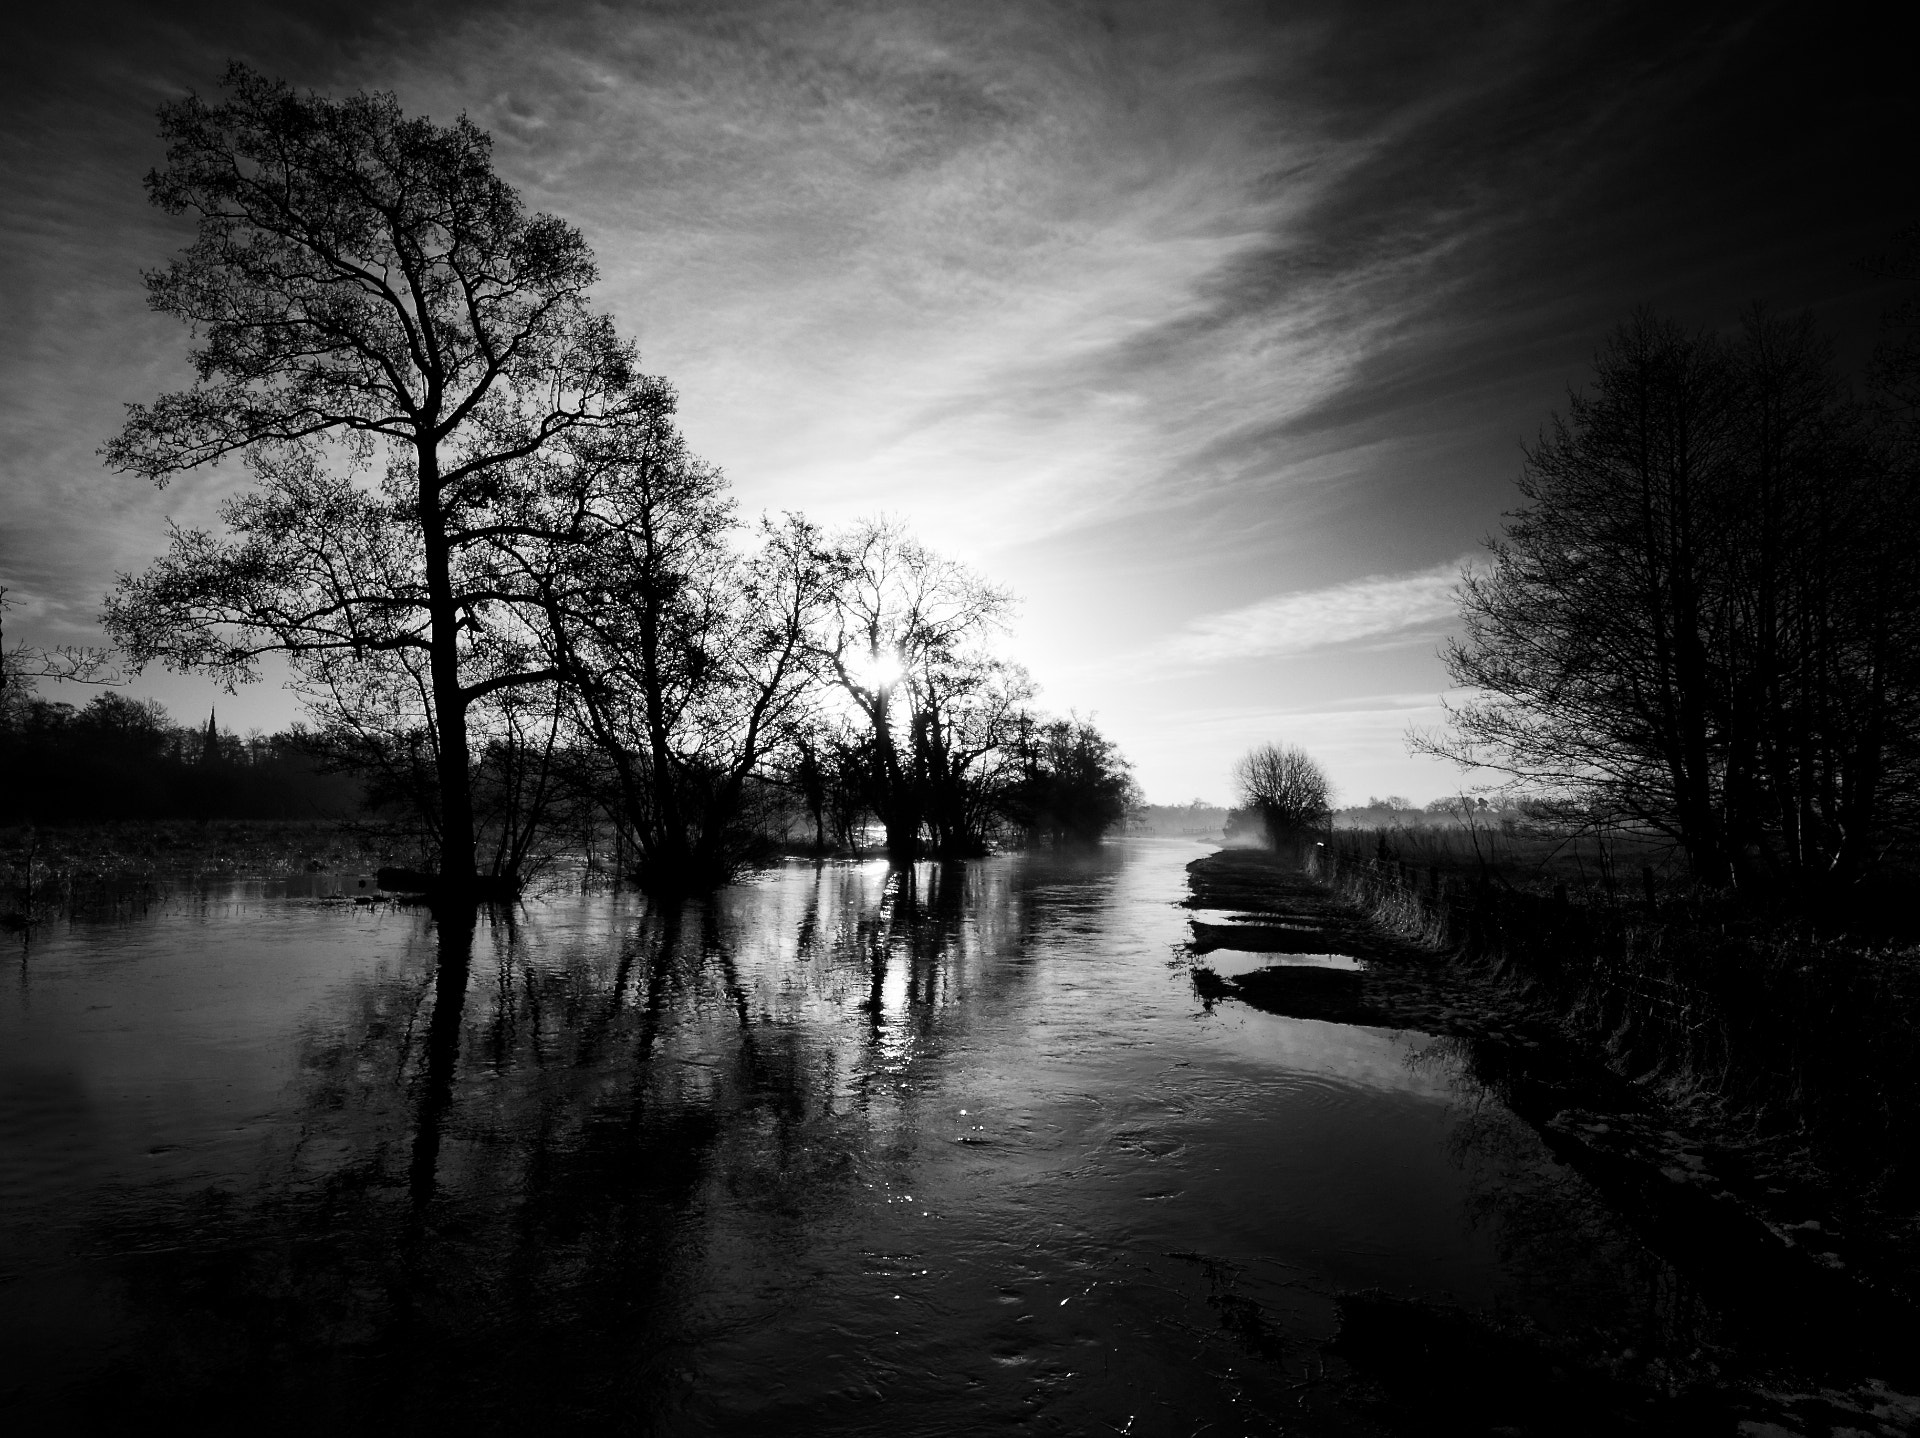 Photograph River Wey #3 by Milan Juza on 500px